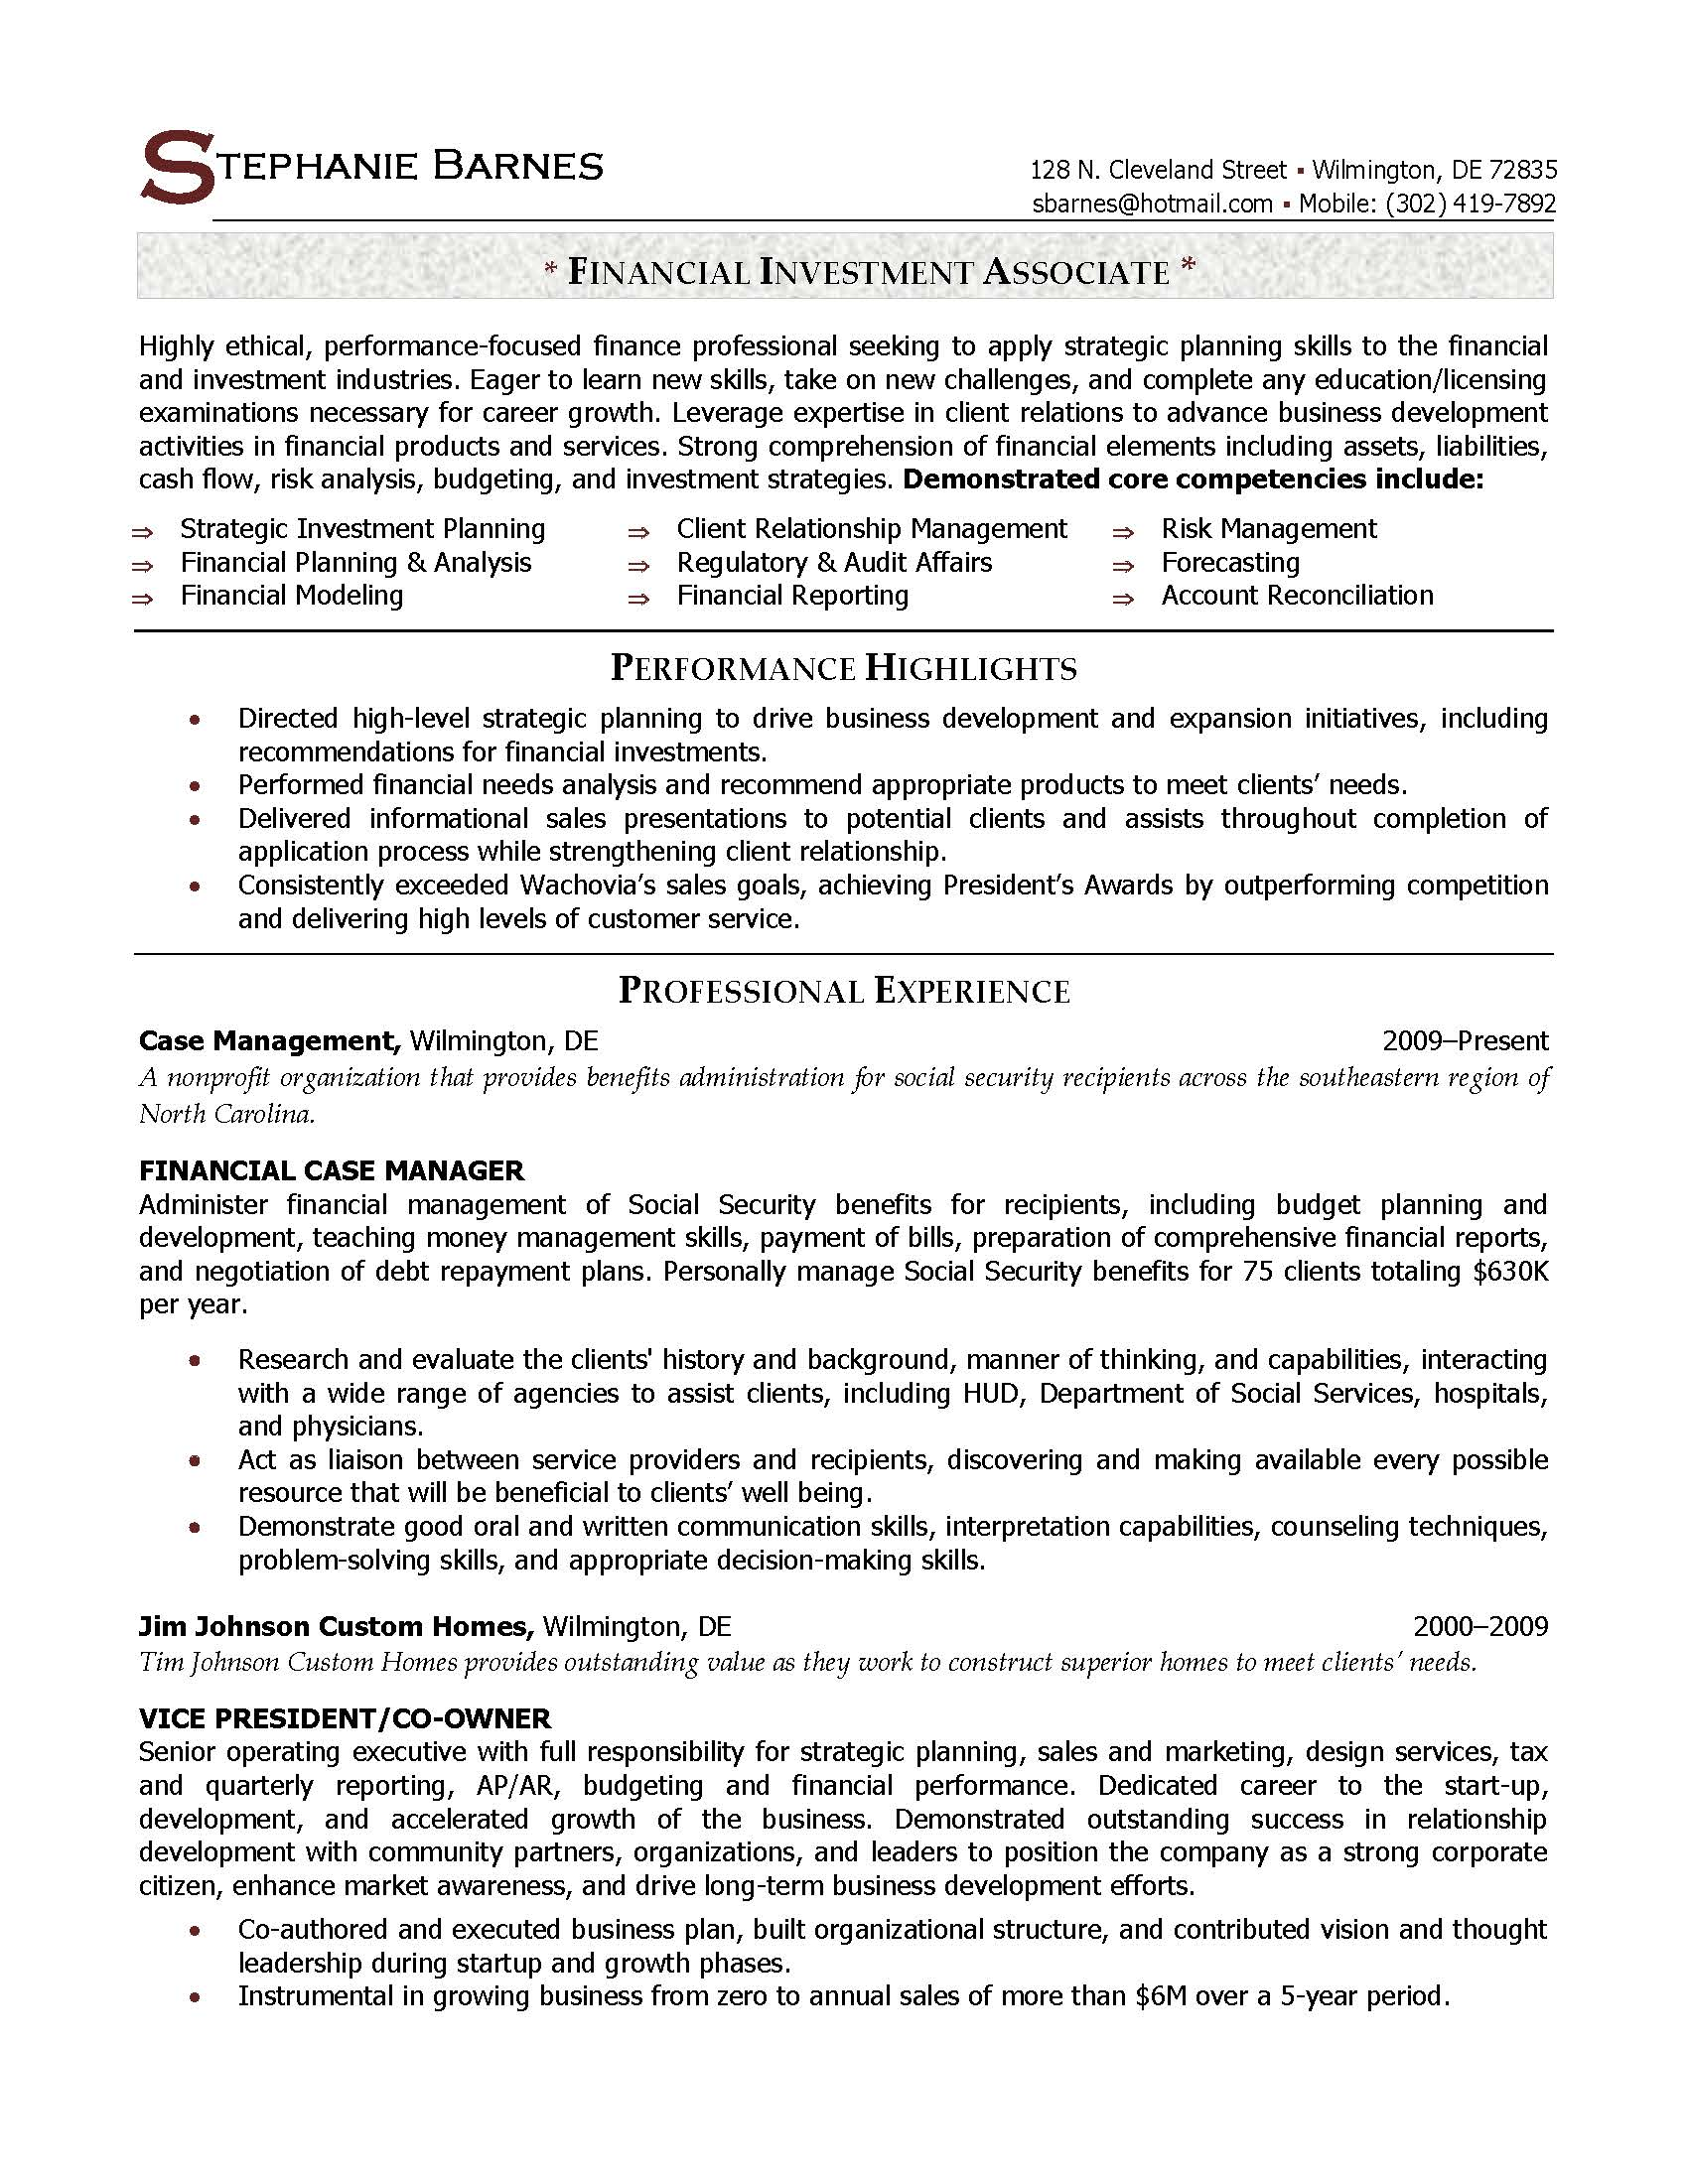 Investment Accountant Resume Resume Samples Program And Finance Manager Fp Anda Devops Sample